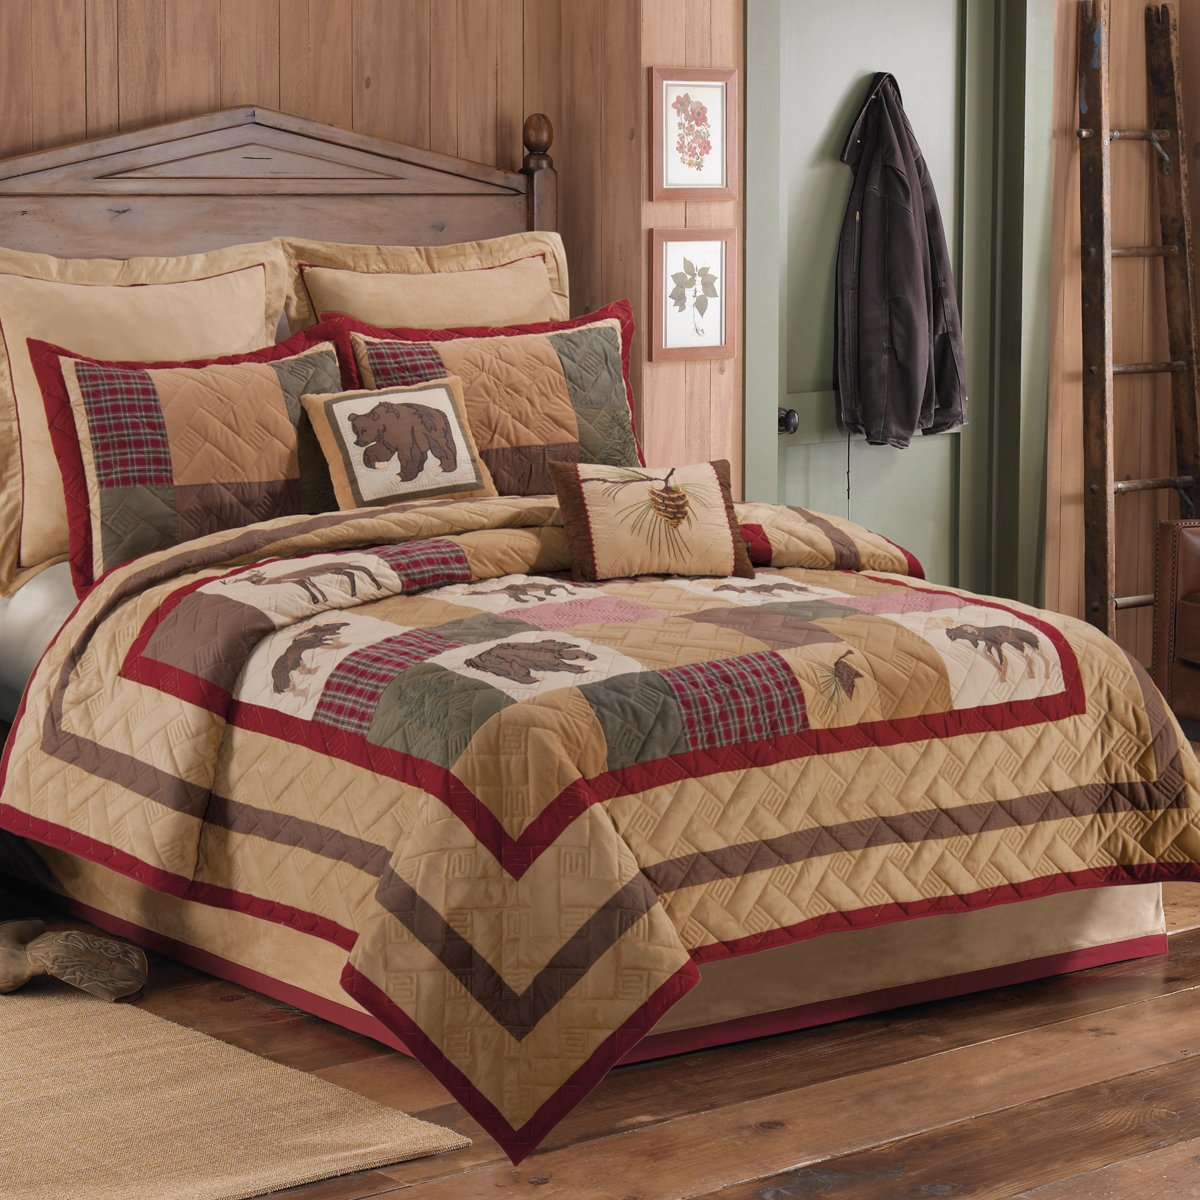 cabin king black size rustic tapestry coverlet decor bedding bed crossing mwgckbrc forest bear